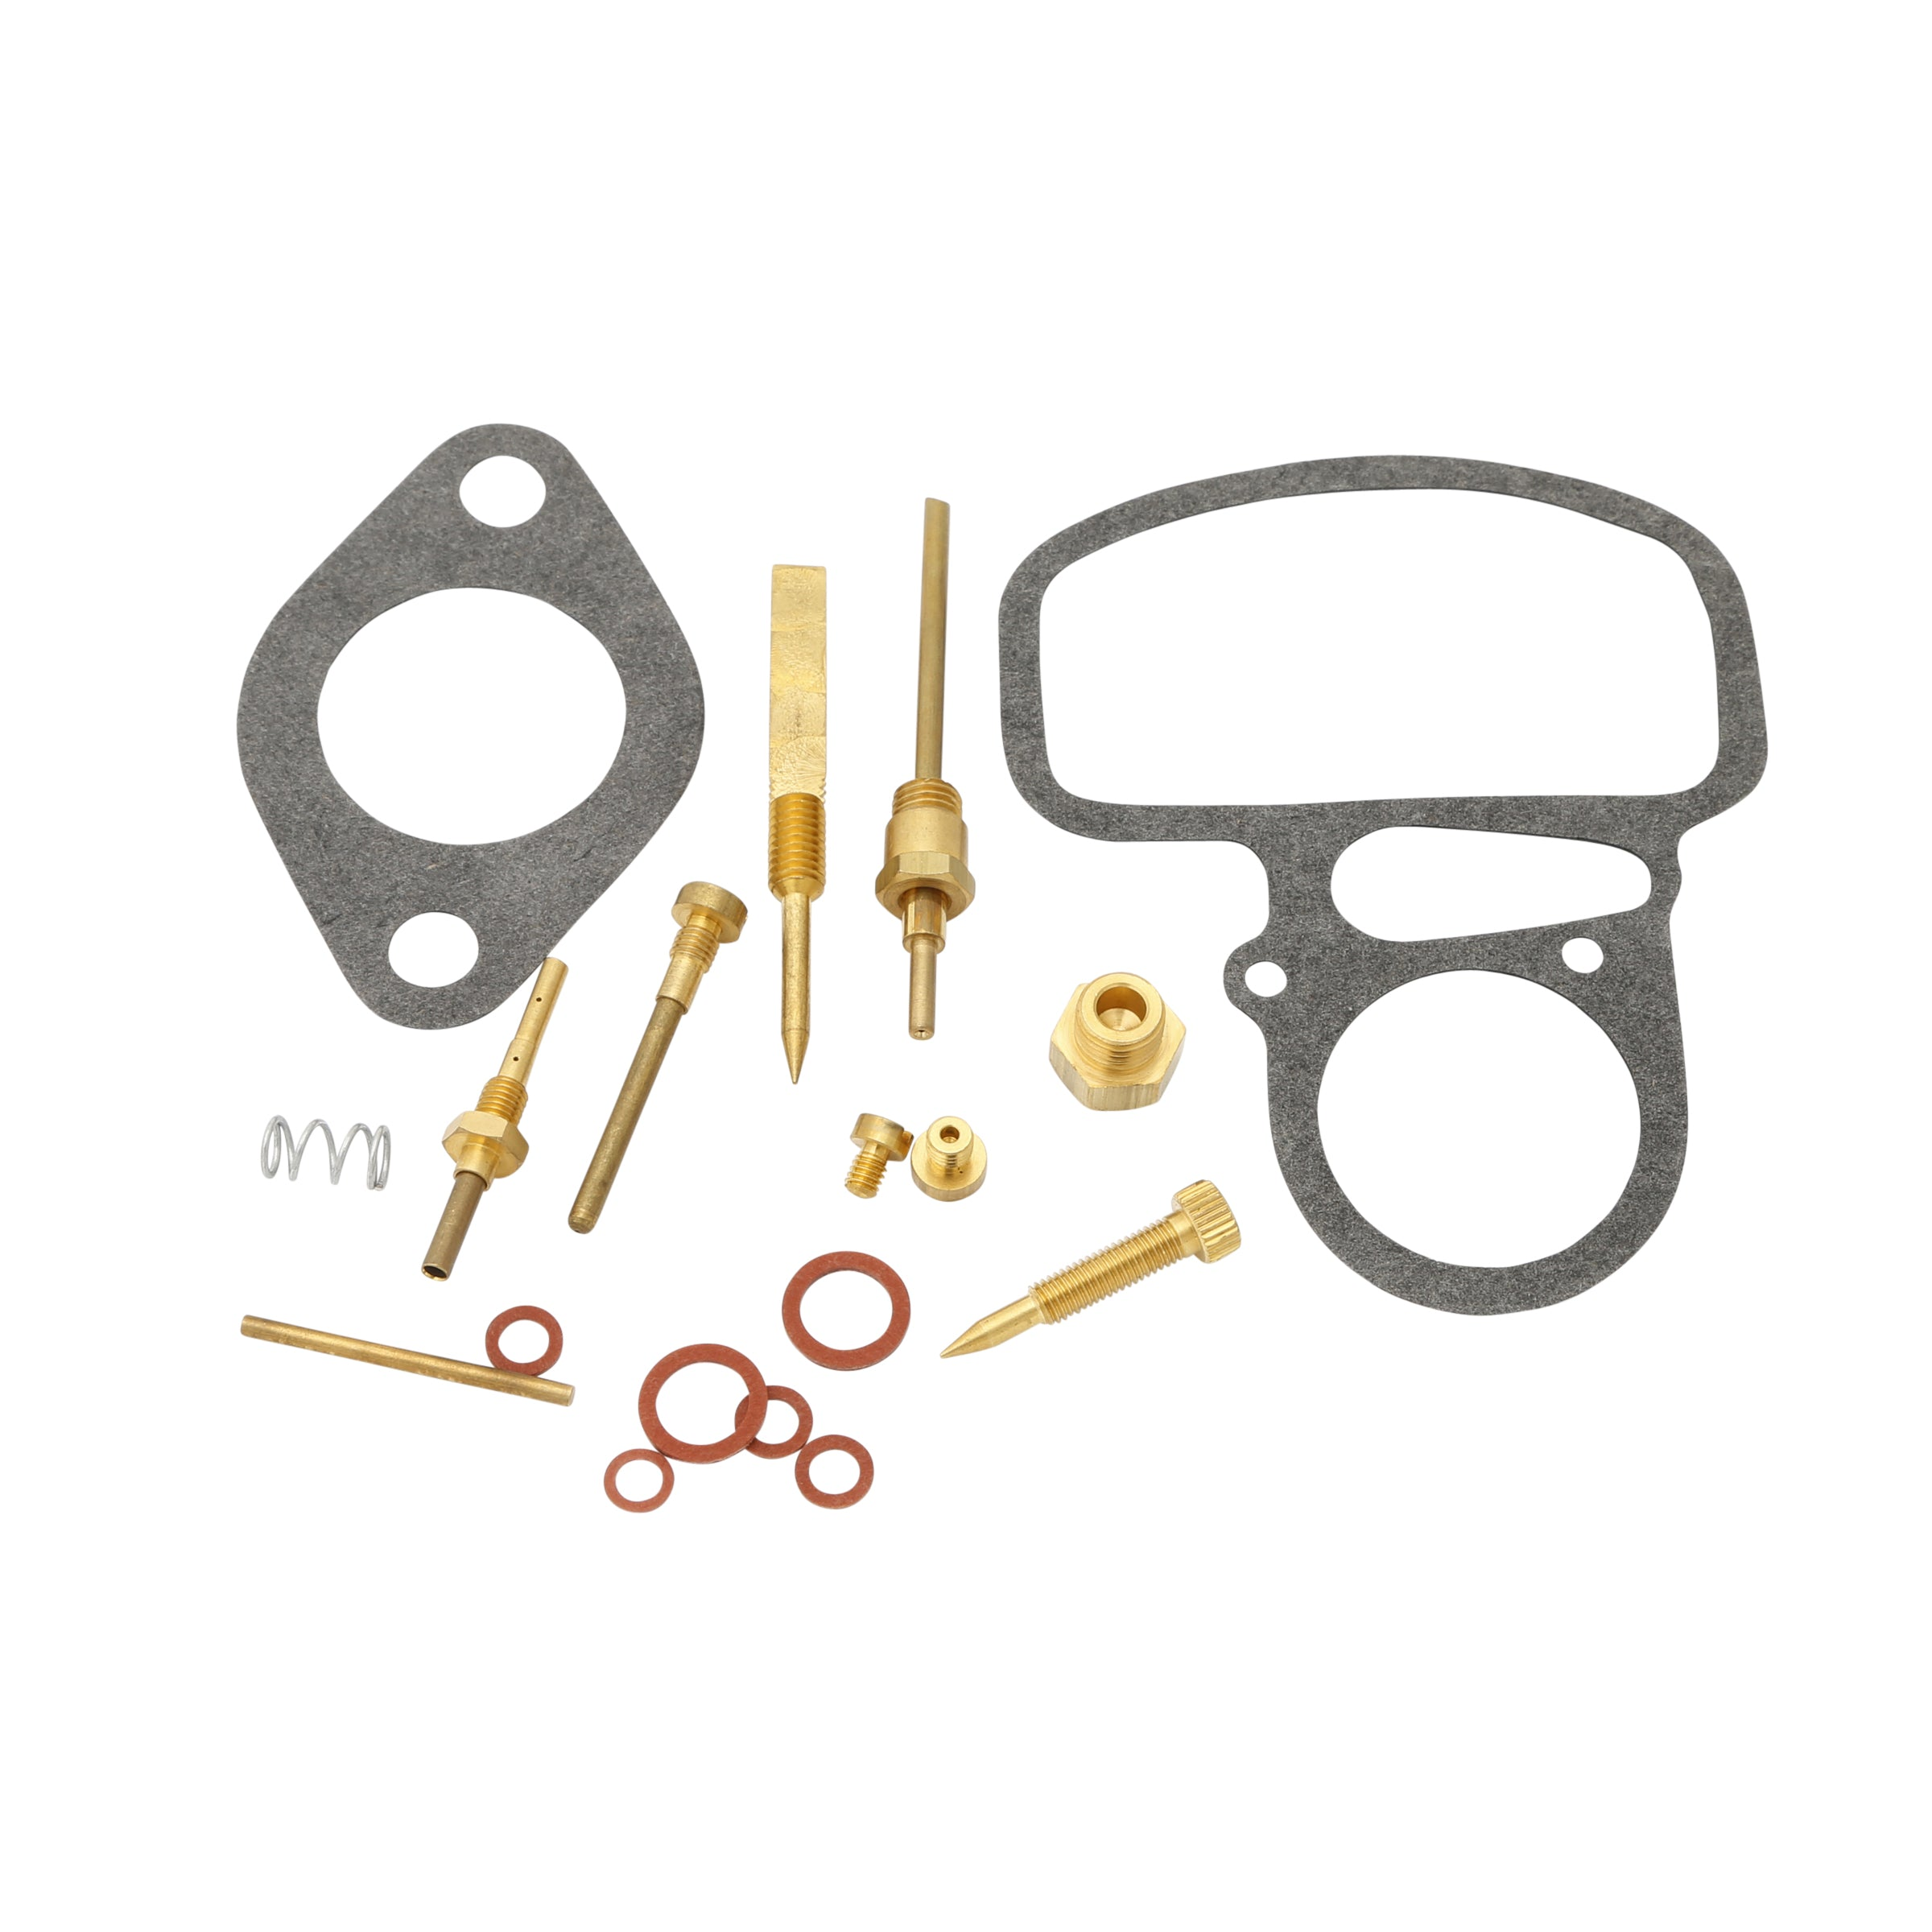 Carburetor Rebuild Kit (Zenith) • Ford 1932-34 4 Cylinder Model B Ford